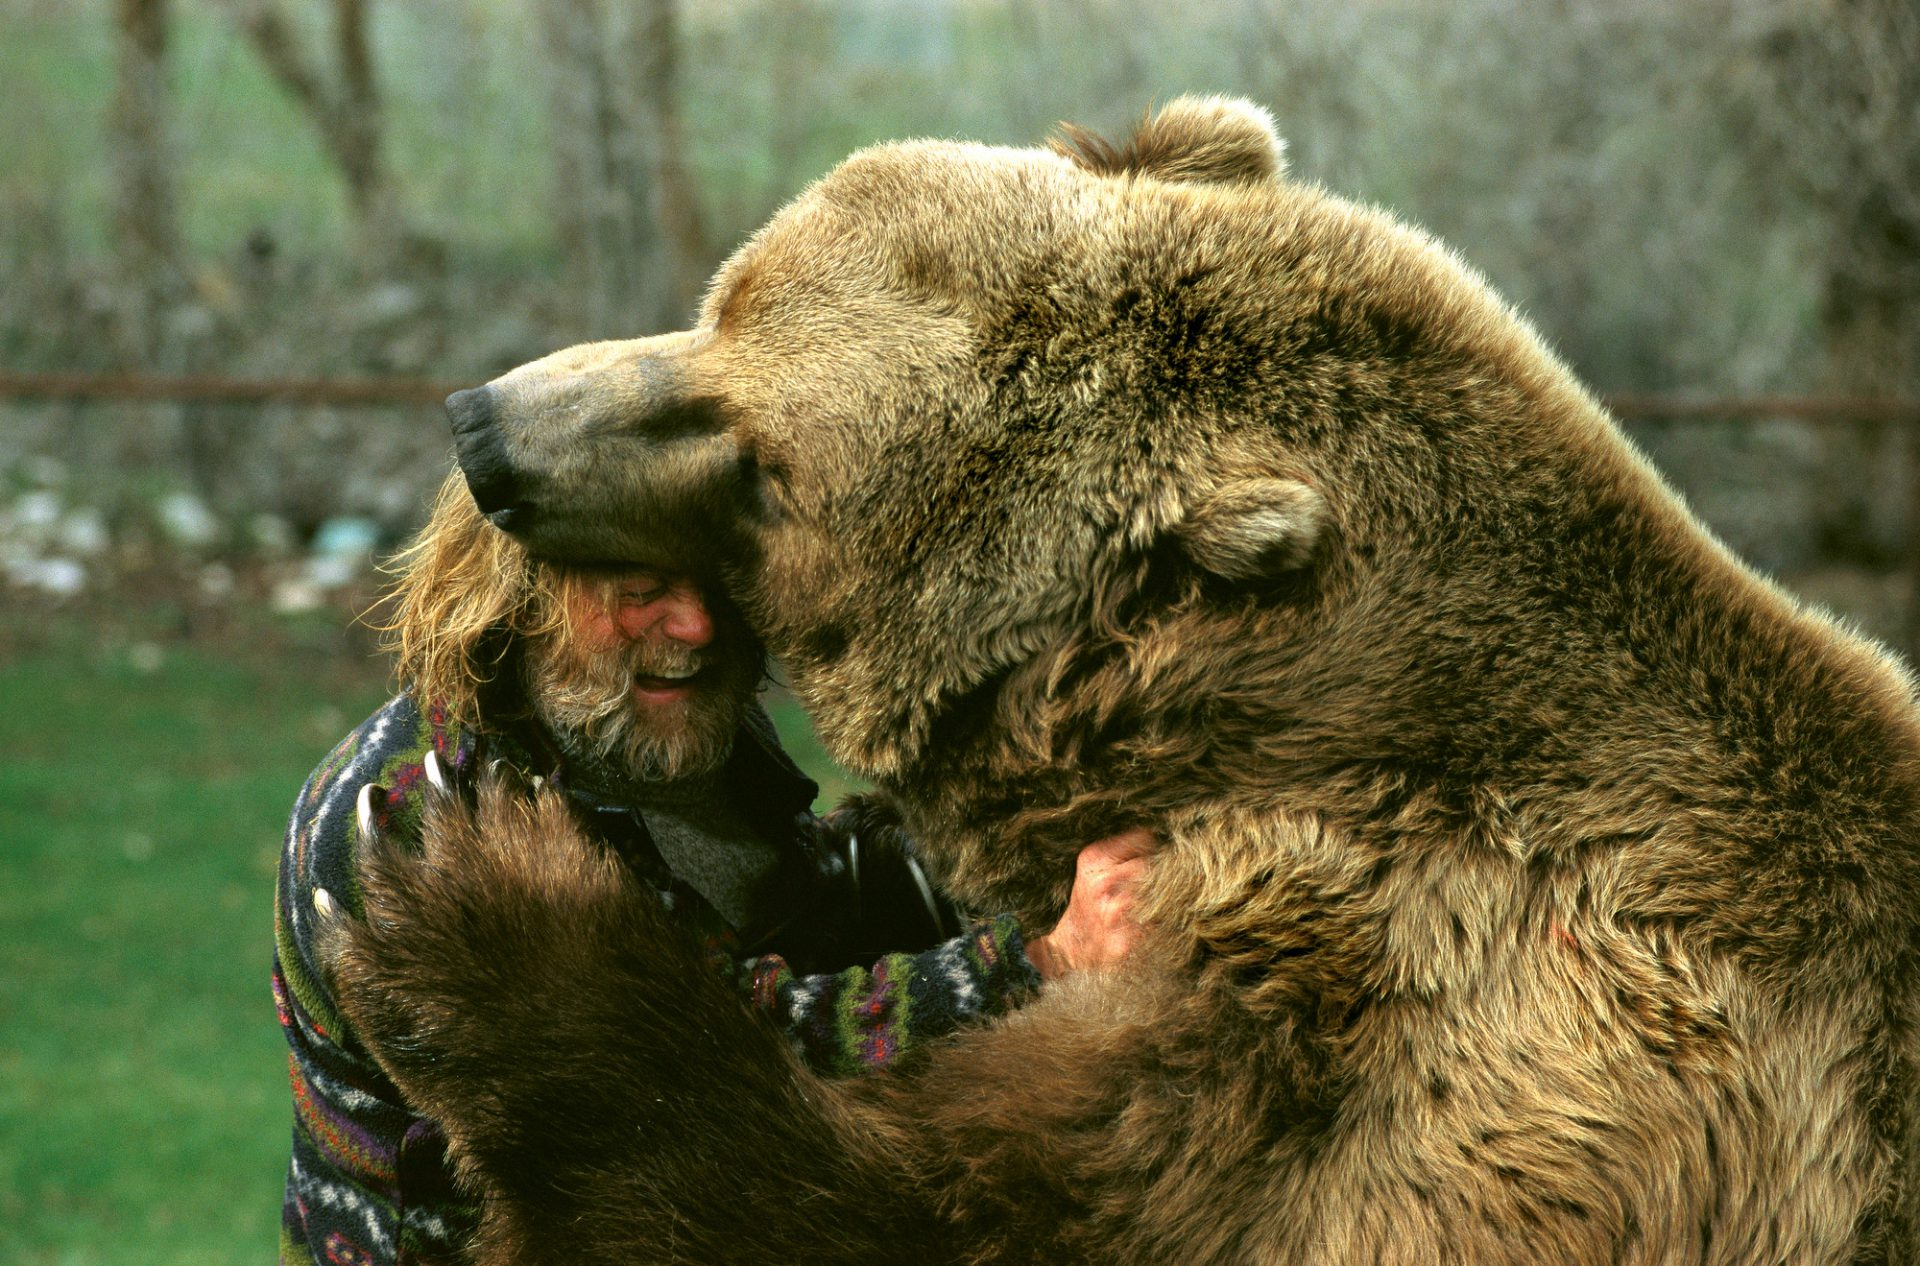 Photo: Doug Seus with Bart the Bear (the late star of movies and television) at their training facility in Utah.